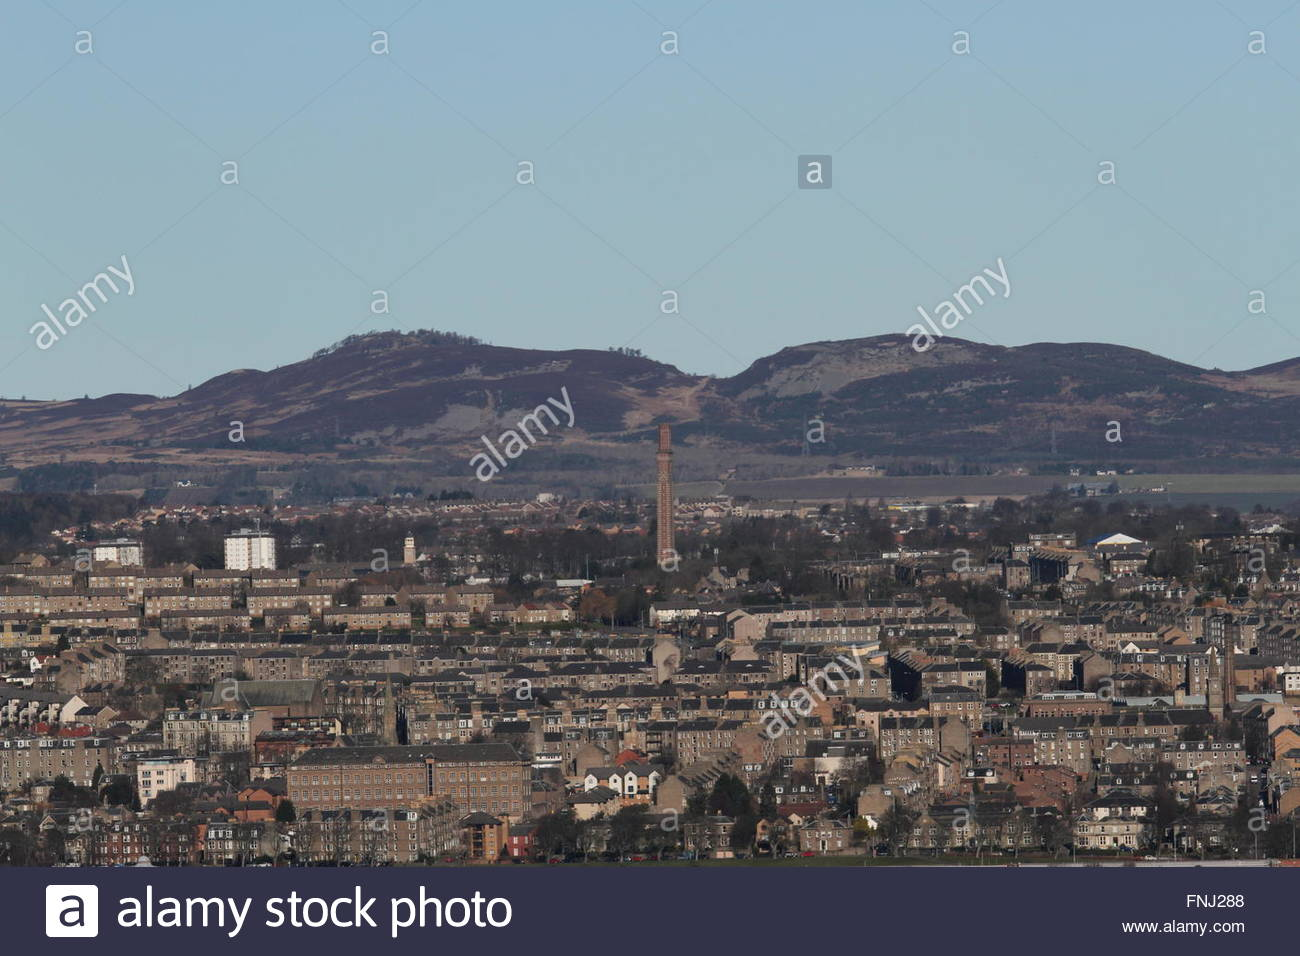 Cox's stack chimney and peaks of Auchterhouse and Balkello Hills viewed from Fife Scotland  February 2016 - Stock Image